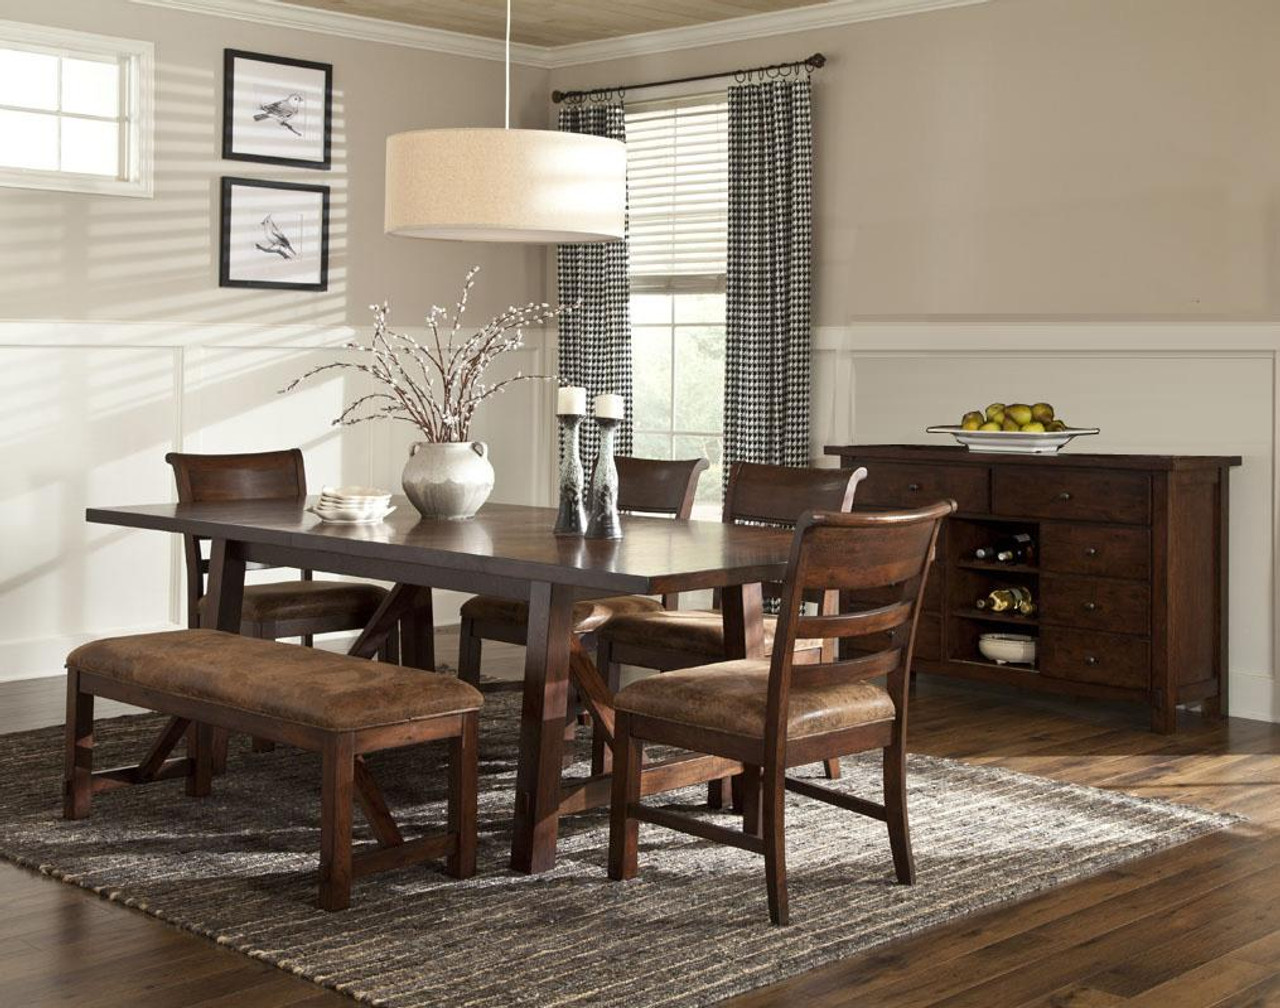 Dining Room Set For 10 To 12 People